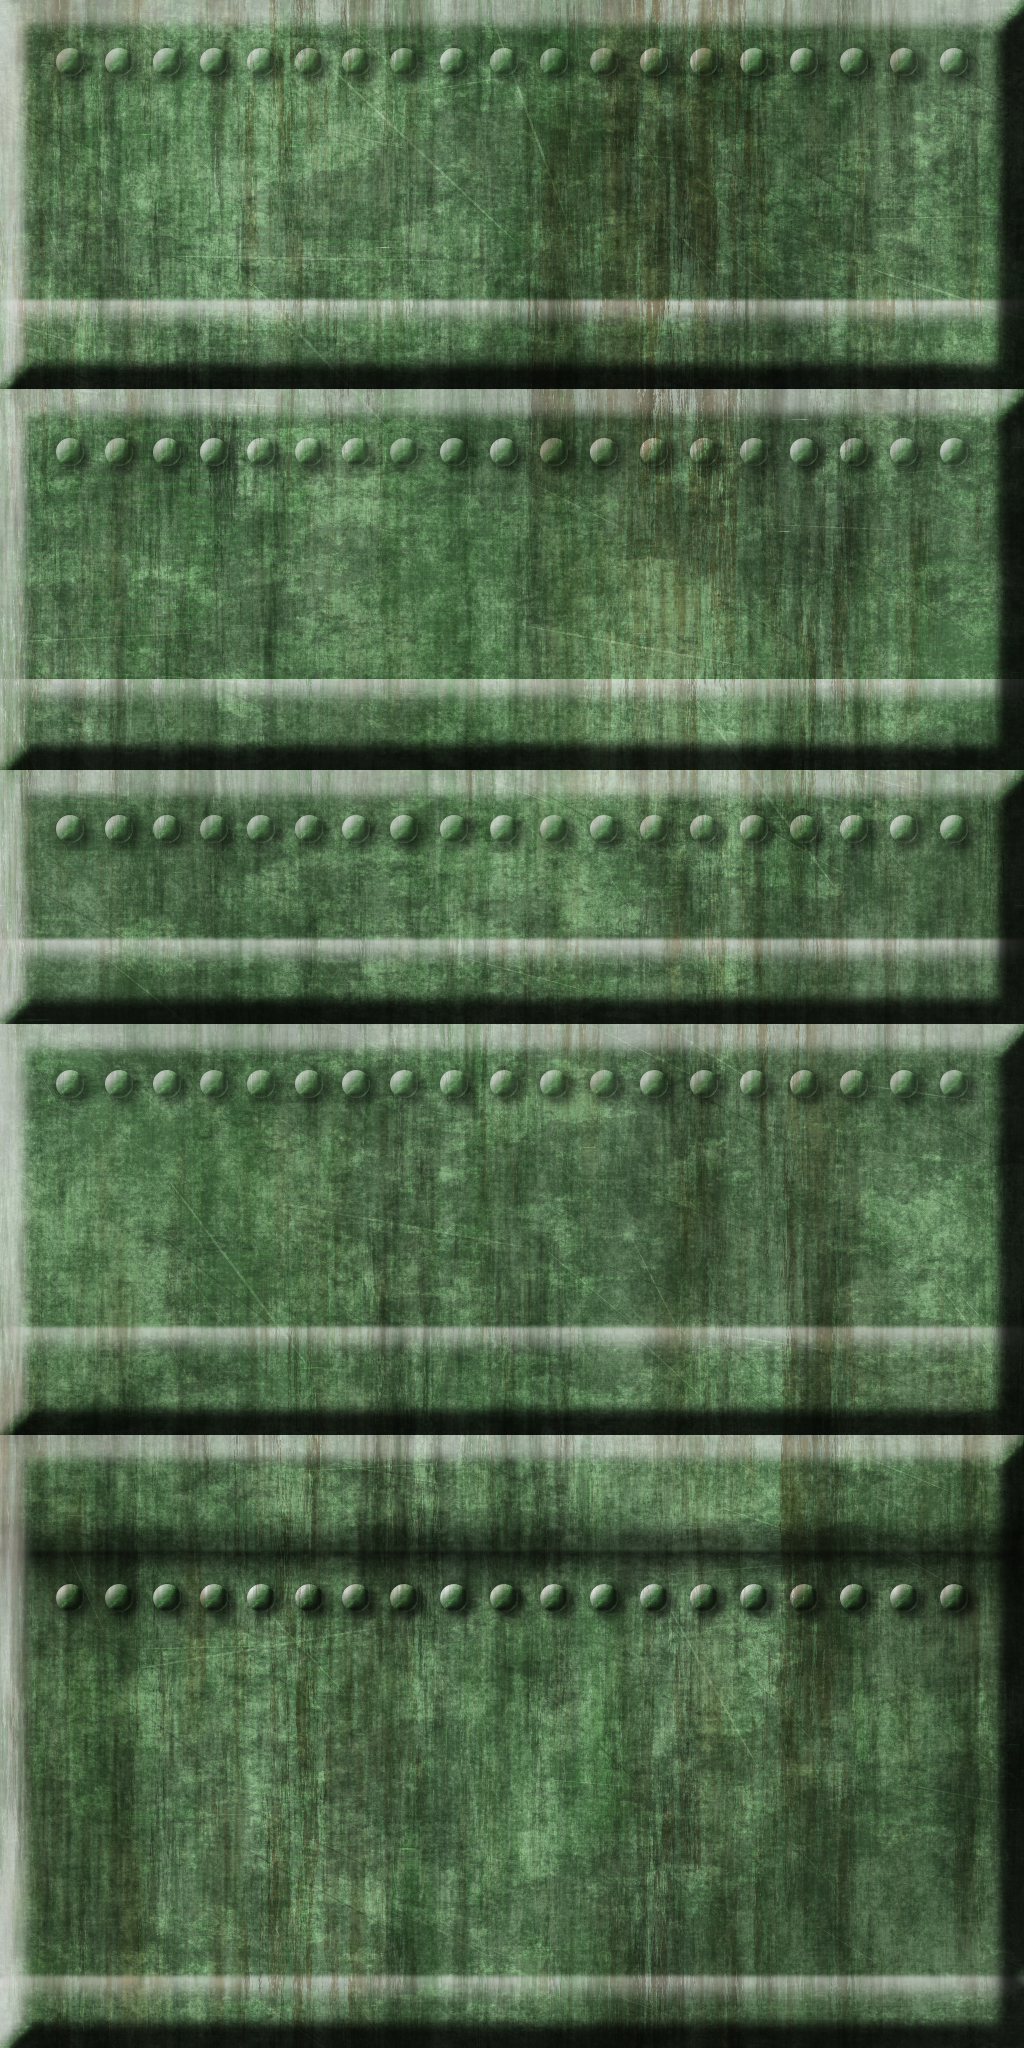 Green Tech Wall 02 by Hoover1979